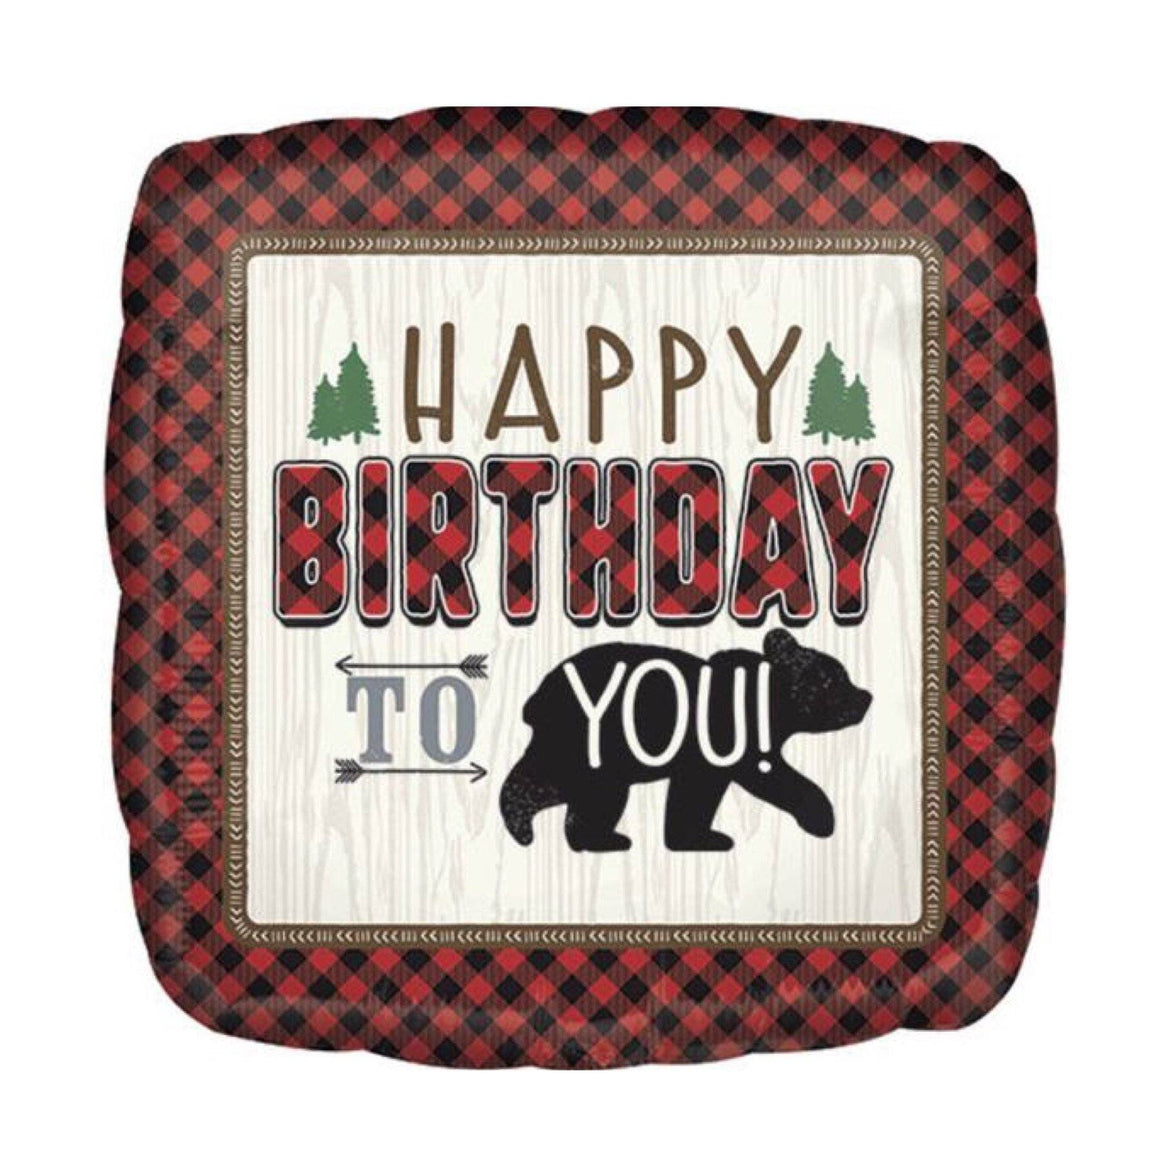 BALLOONS - BUFFALO PLAID BEAR HBD, Balloons, Anagram - Bon + Co. Party Studio